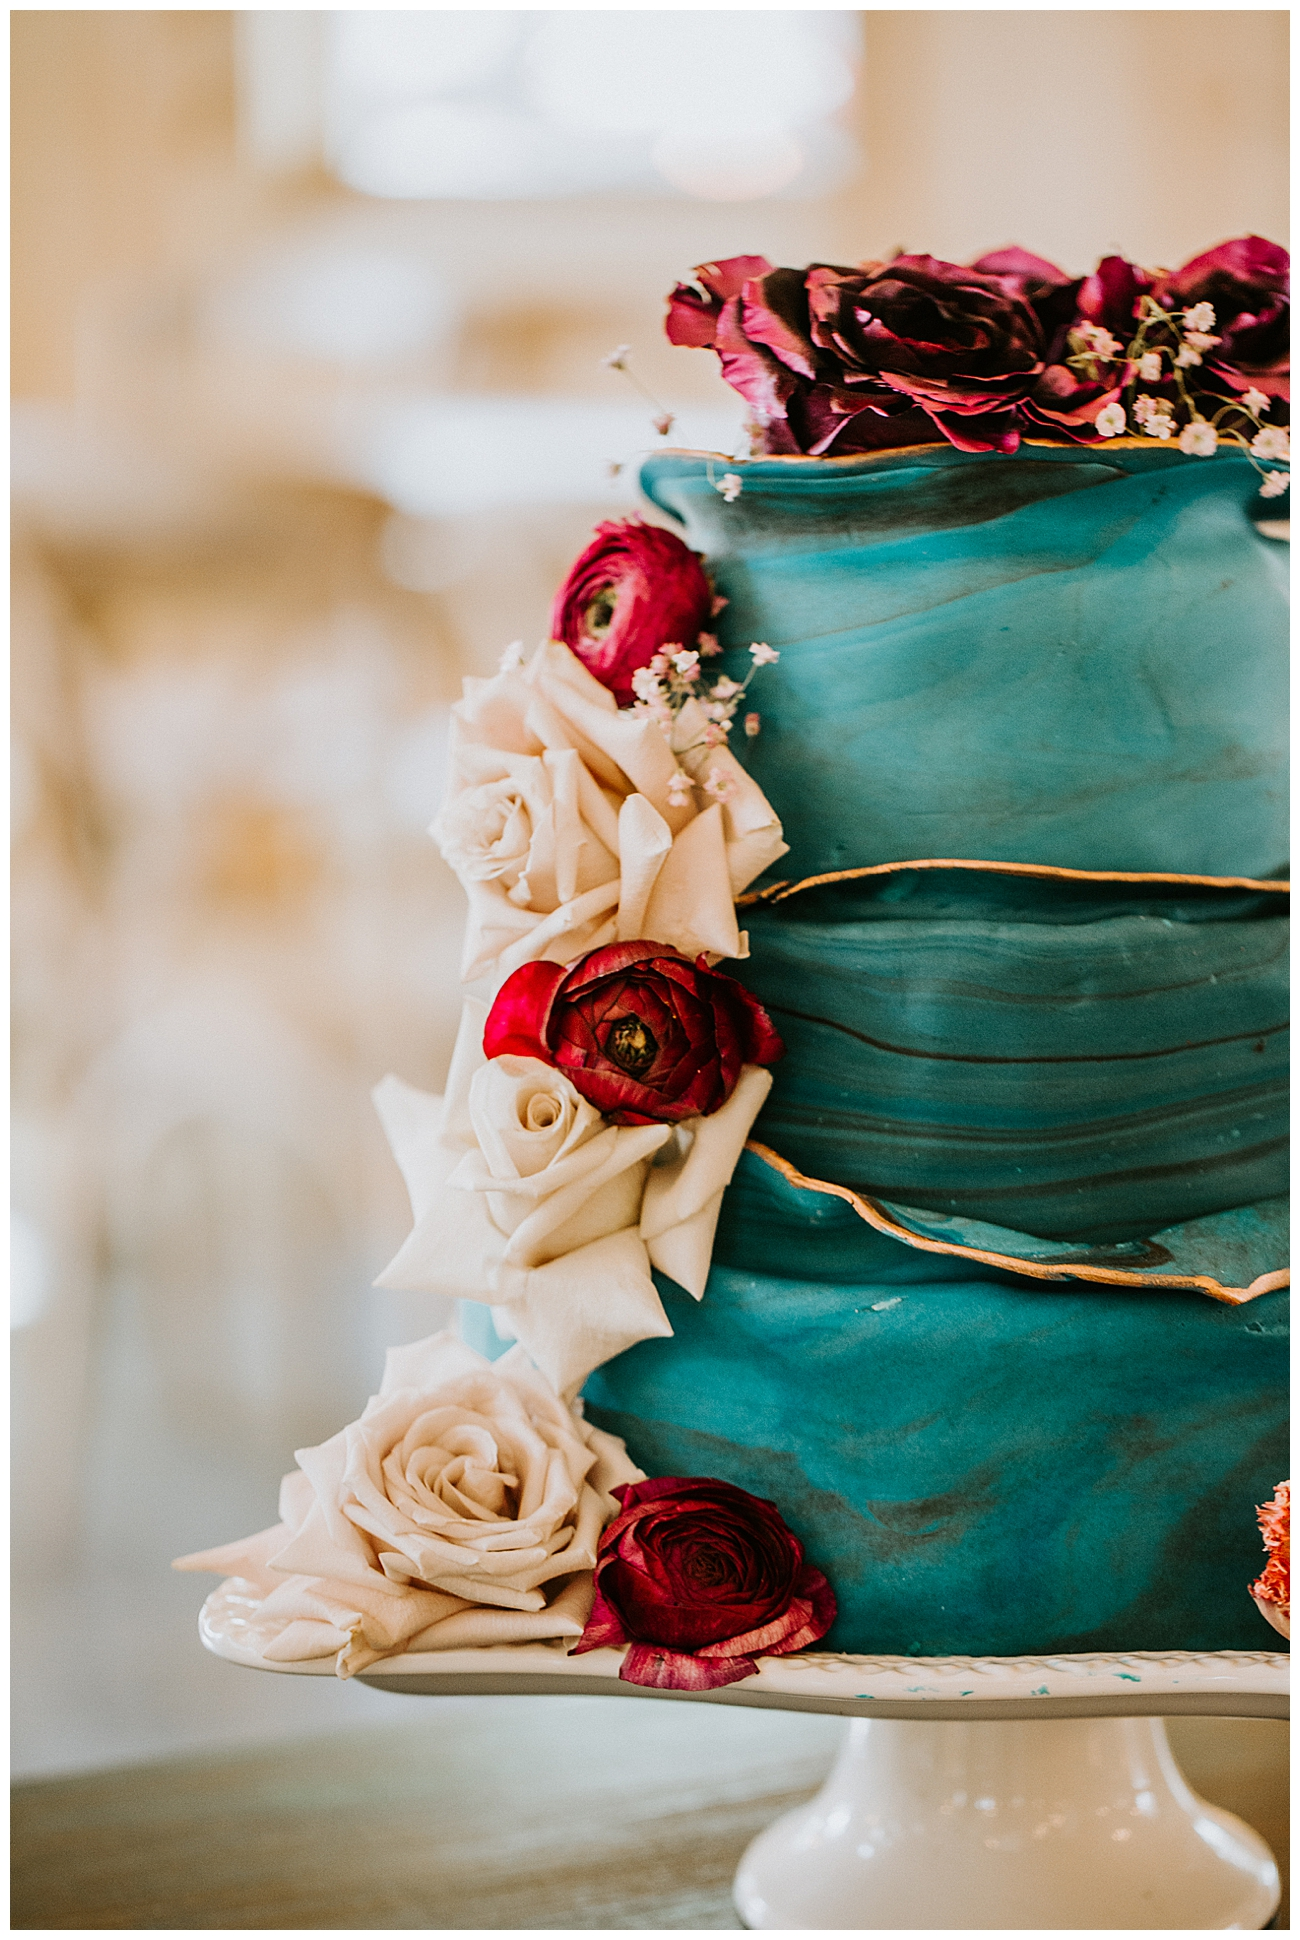 teal-and-gold-wedding-cake